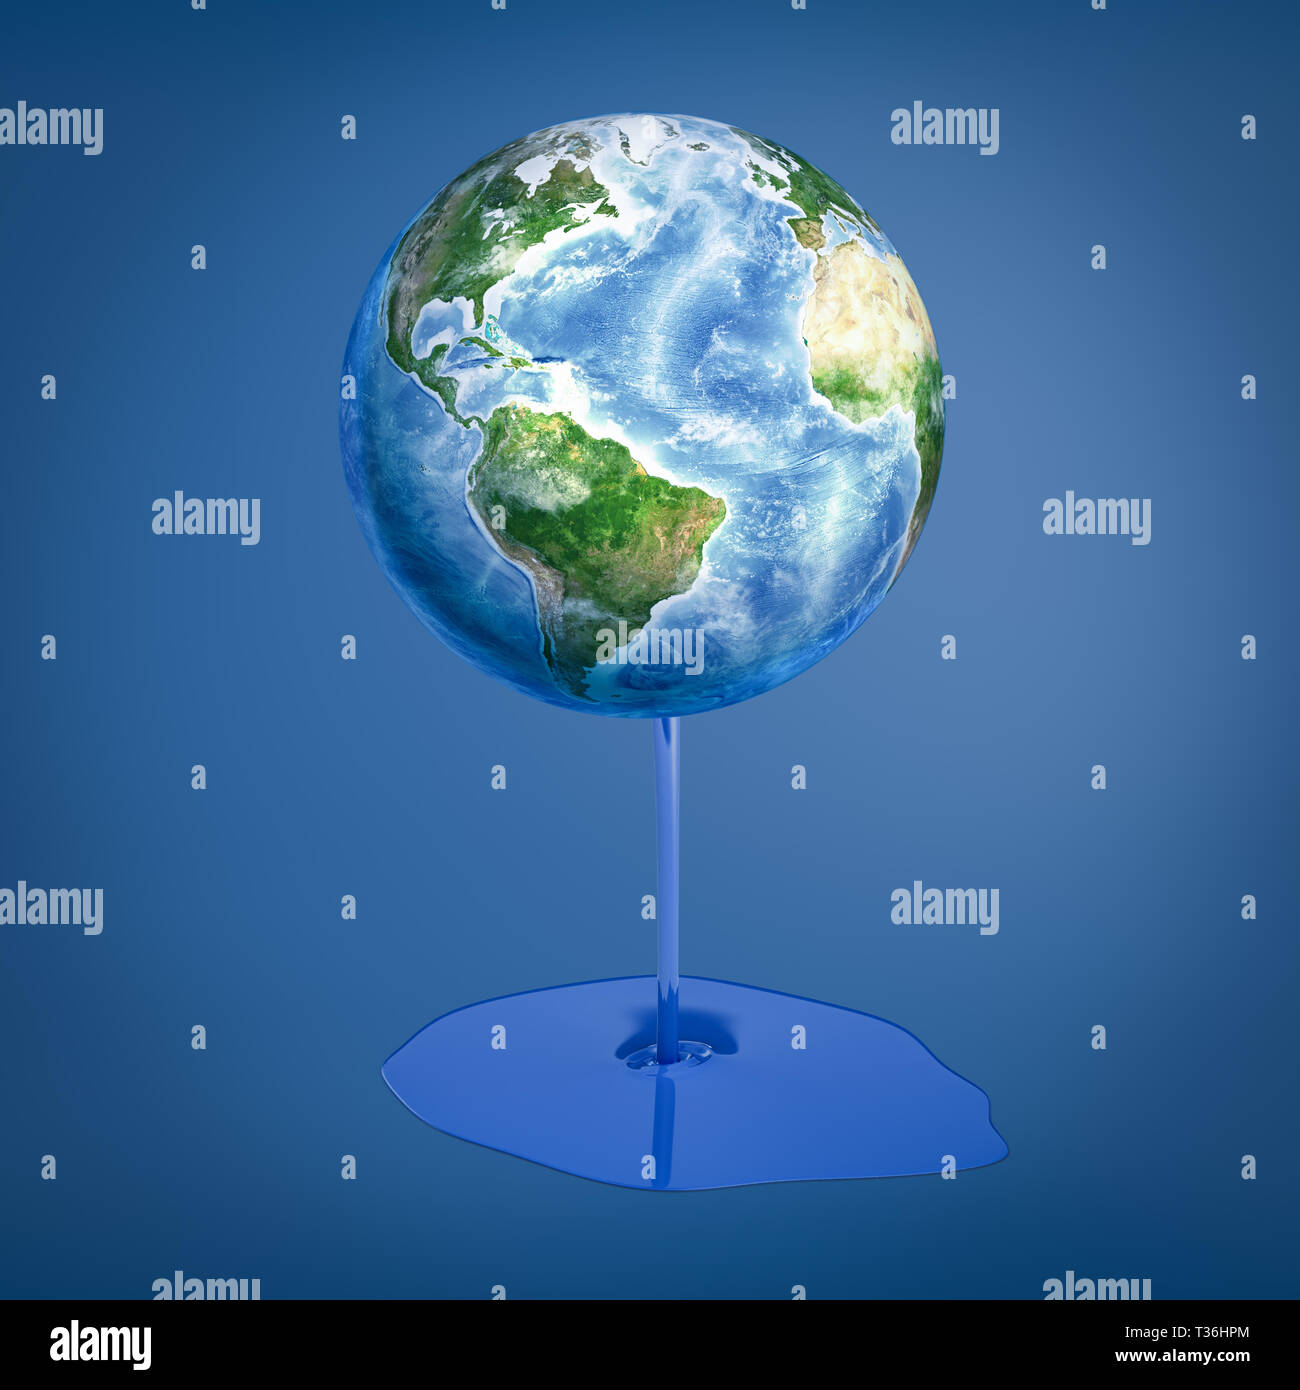 3d rendering of earth globe with blue thick liquid melting off on blue background - Stock Image